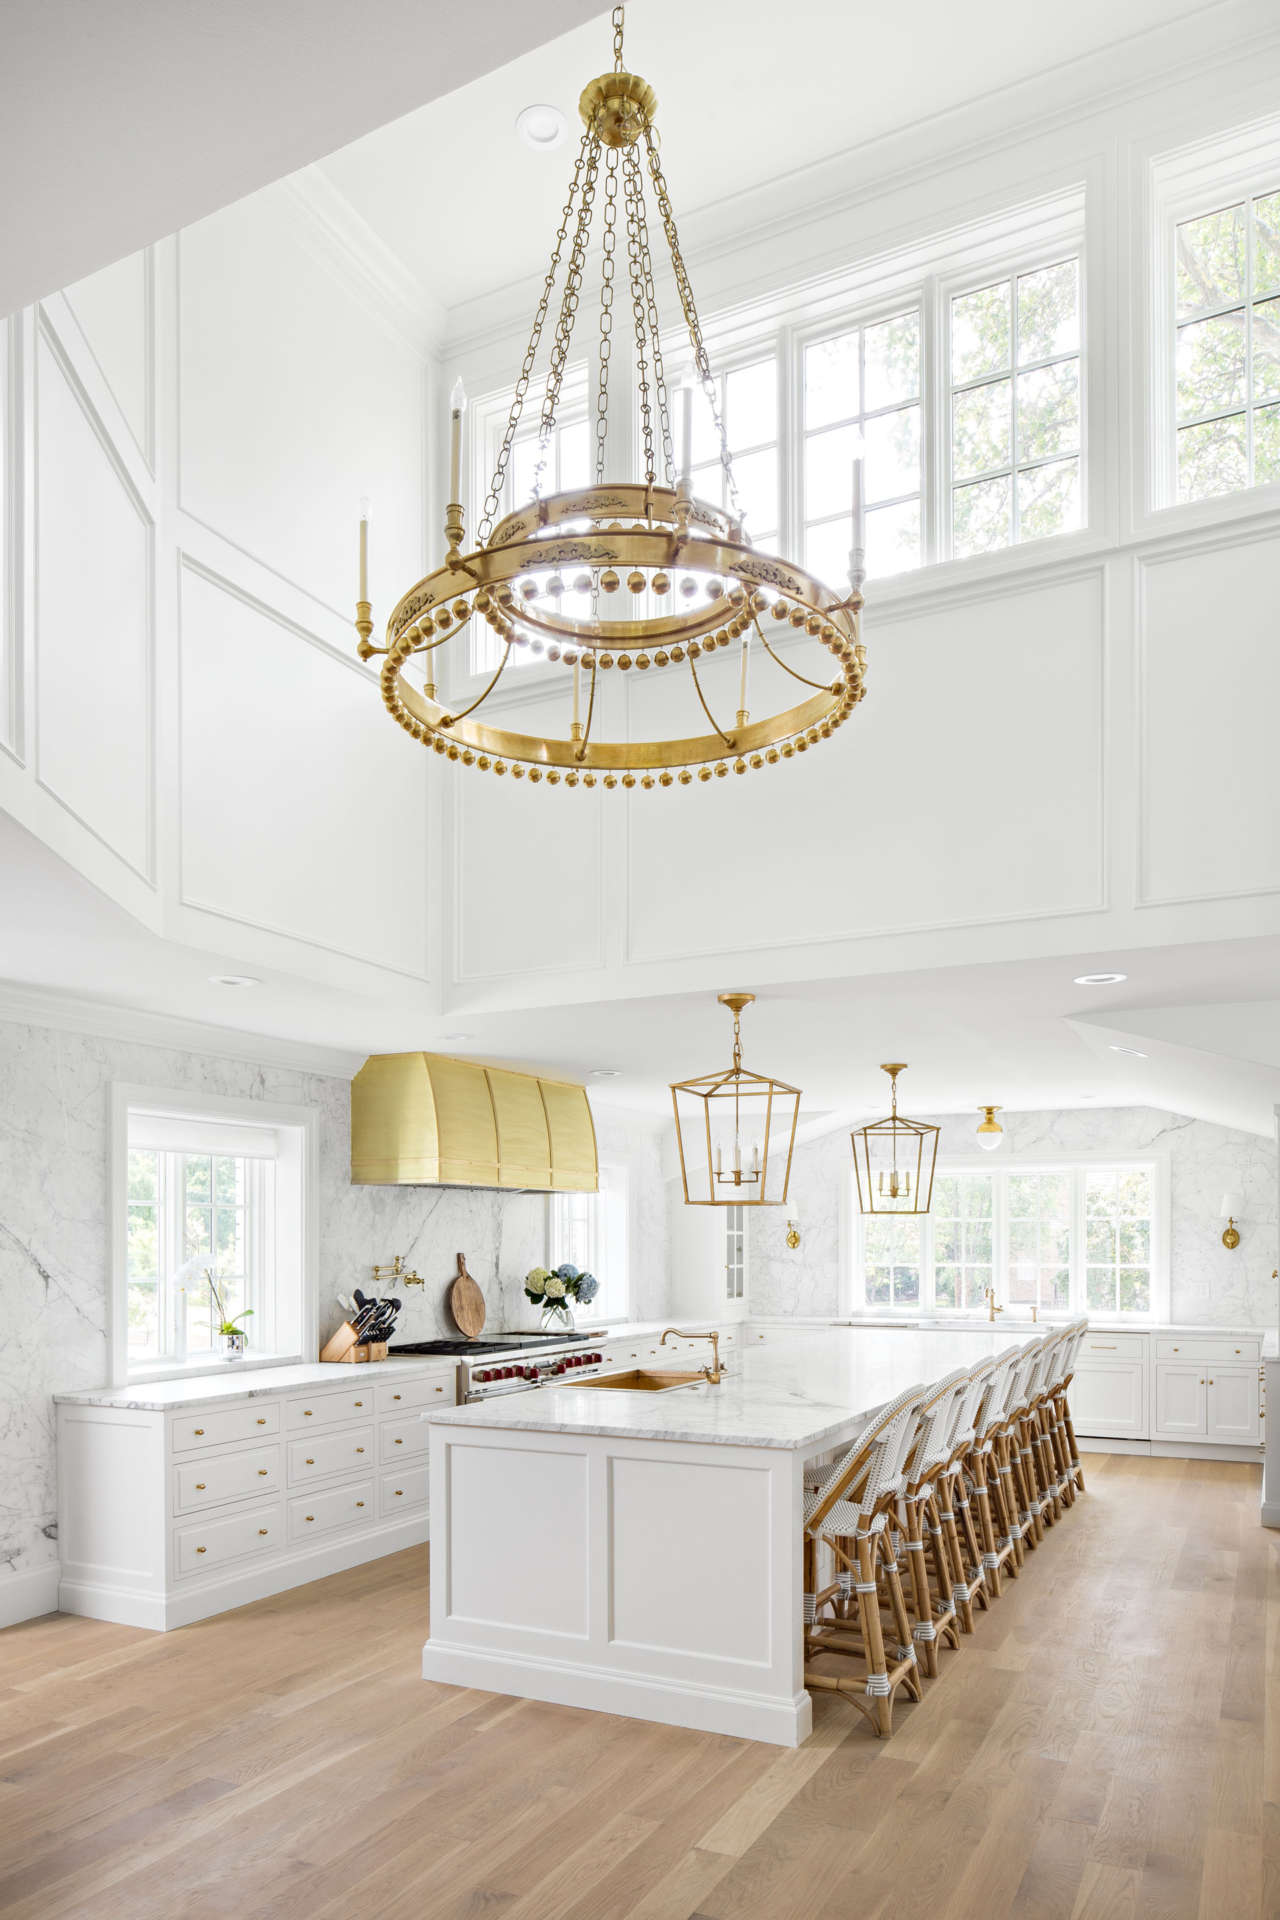 Luxurious kitchen with soaring ceiling! This two story kitchen by The Fox Group is a classic masterpiece. #luxuriouskitchen #whitekitchen #benjaminmooresimplywhite